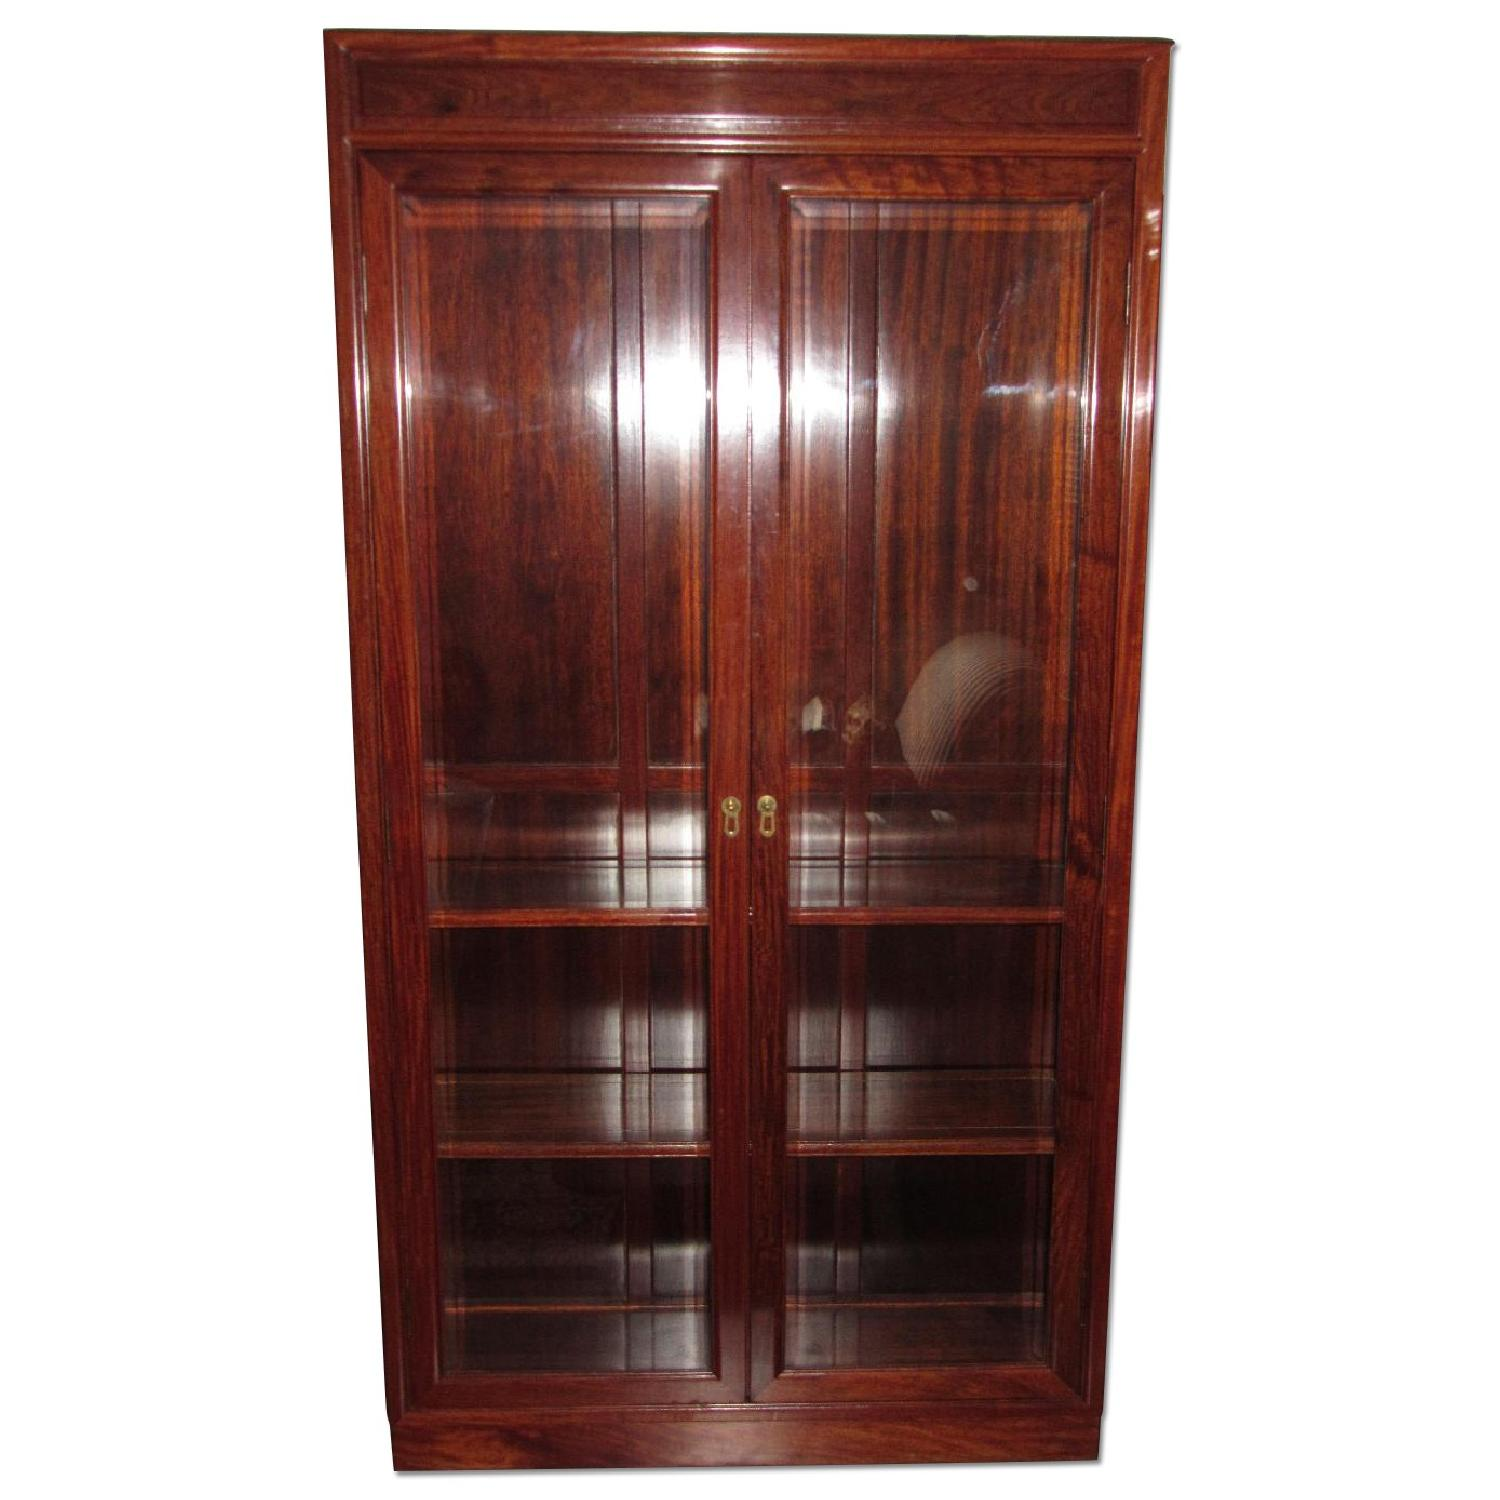 Rosewood Elm Glass Door Cabinets - 2 Available - image-0